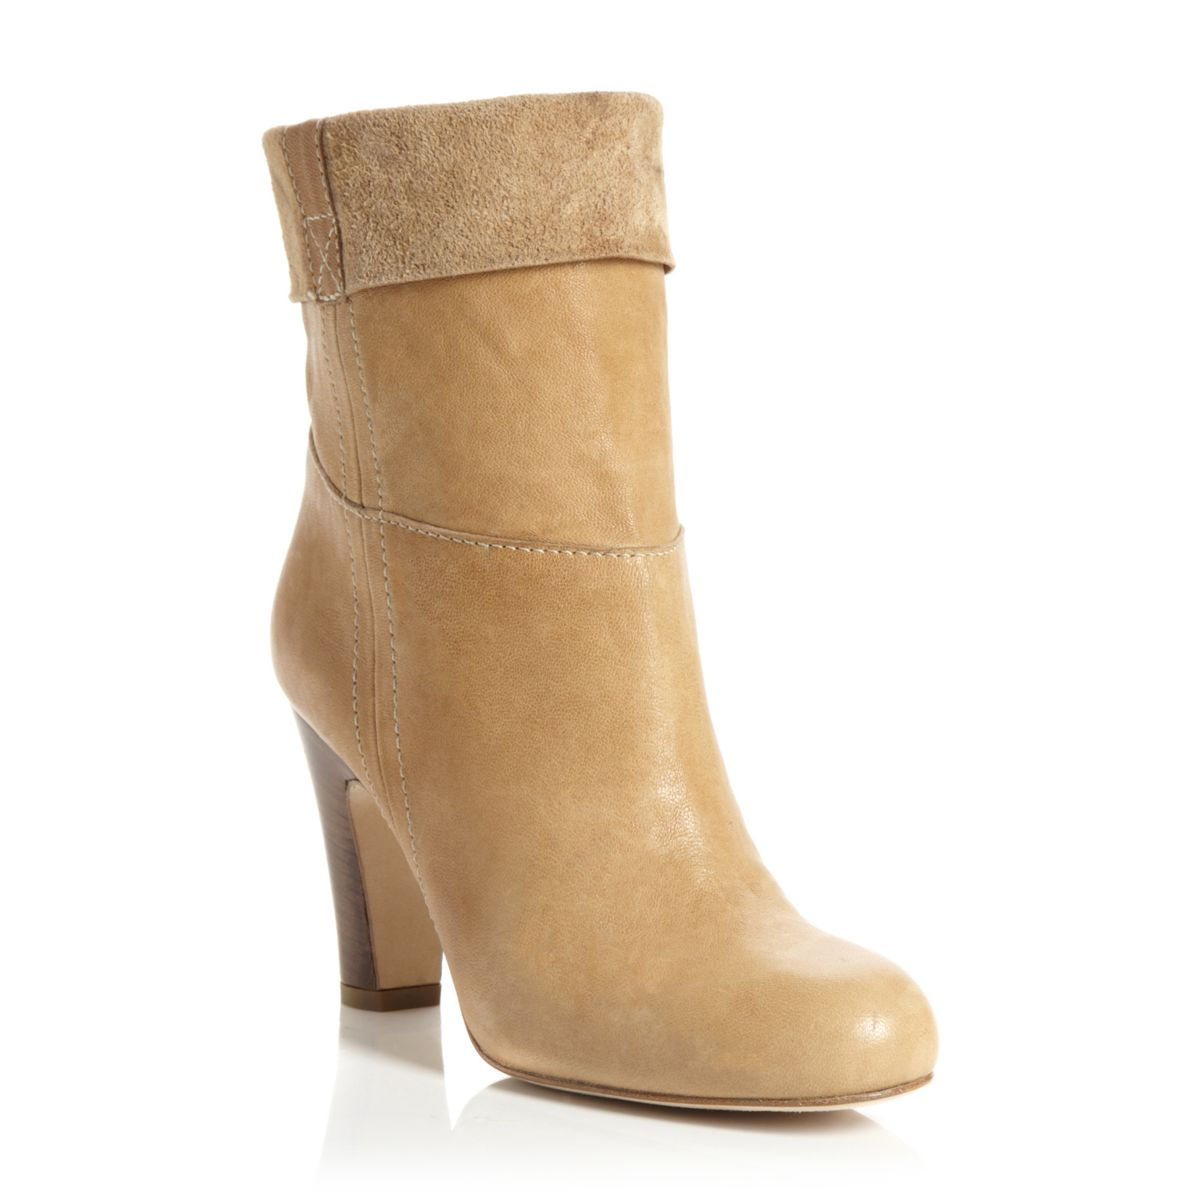 PIED-A-TERRE-SAMMA-BEIGE-LEATHER-LADIES-HIGH-HEEL-WOMENS-ANKLE-BOOTS-SIZE-3-8-UK